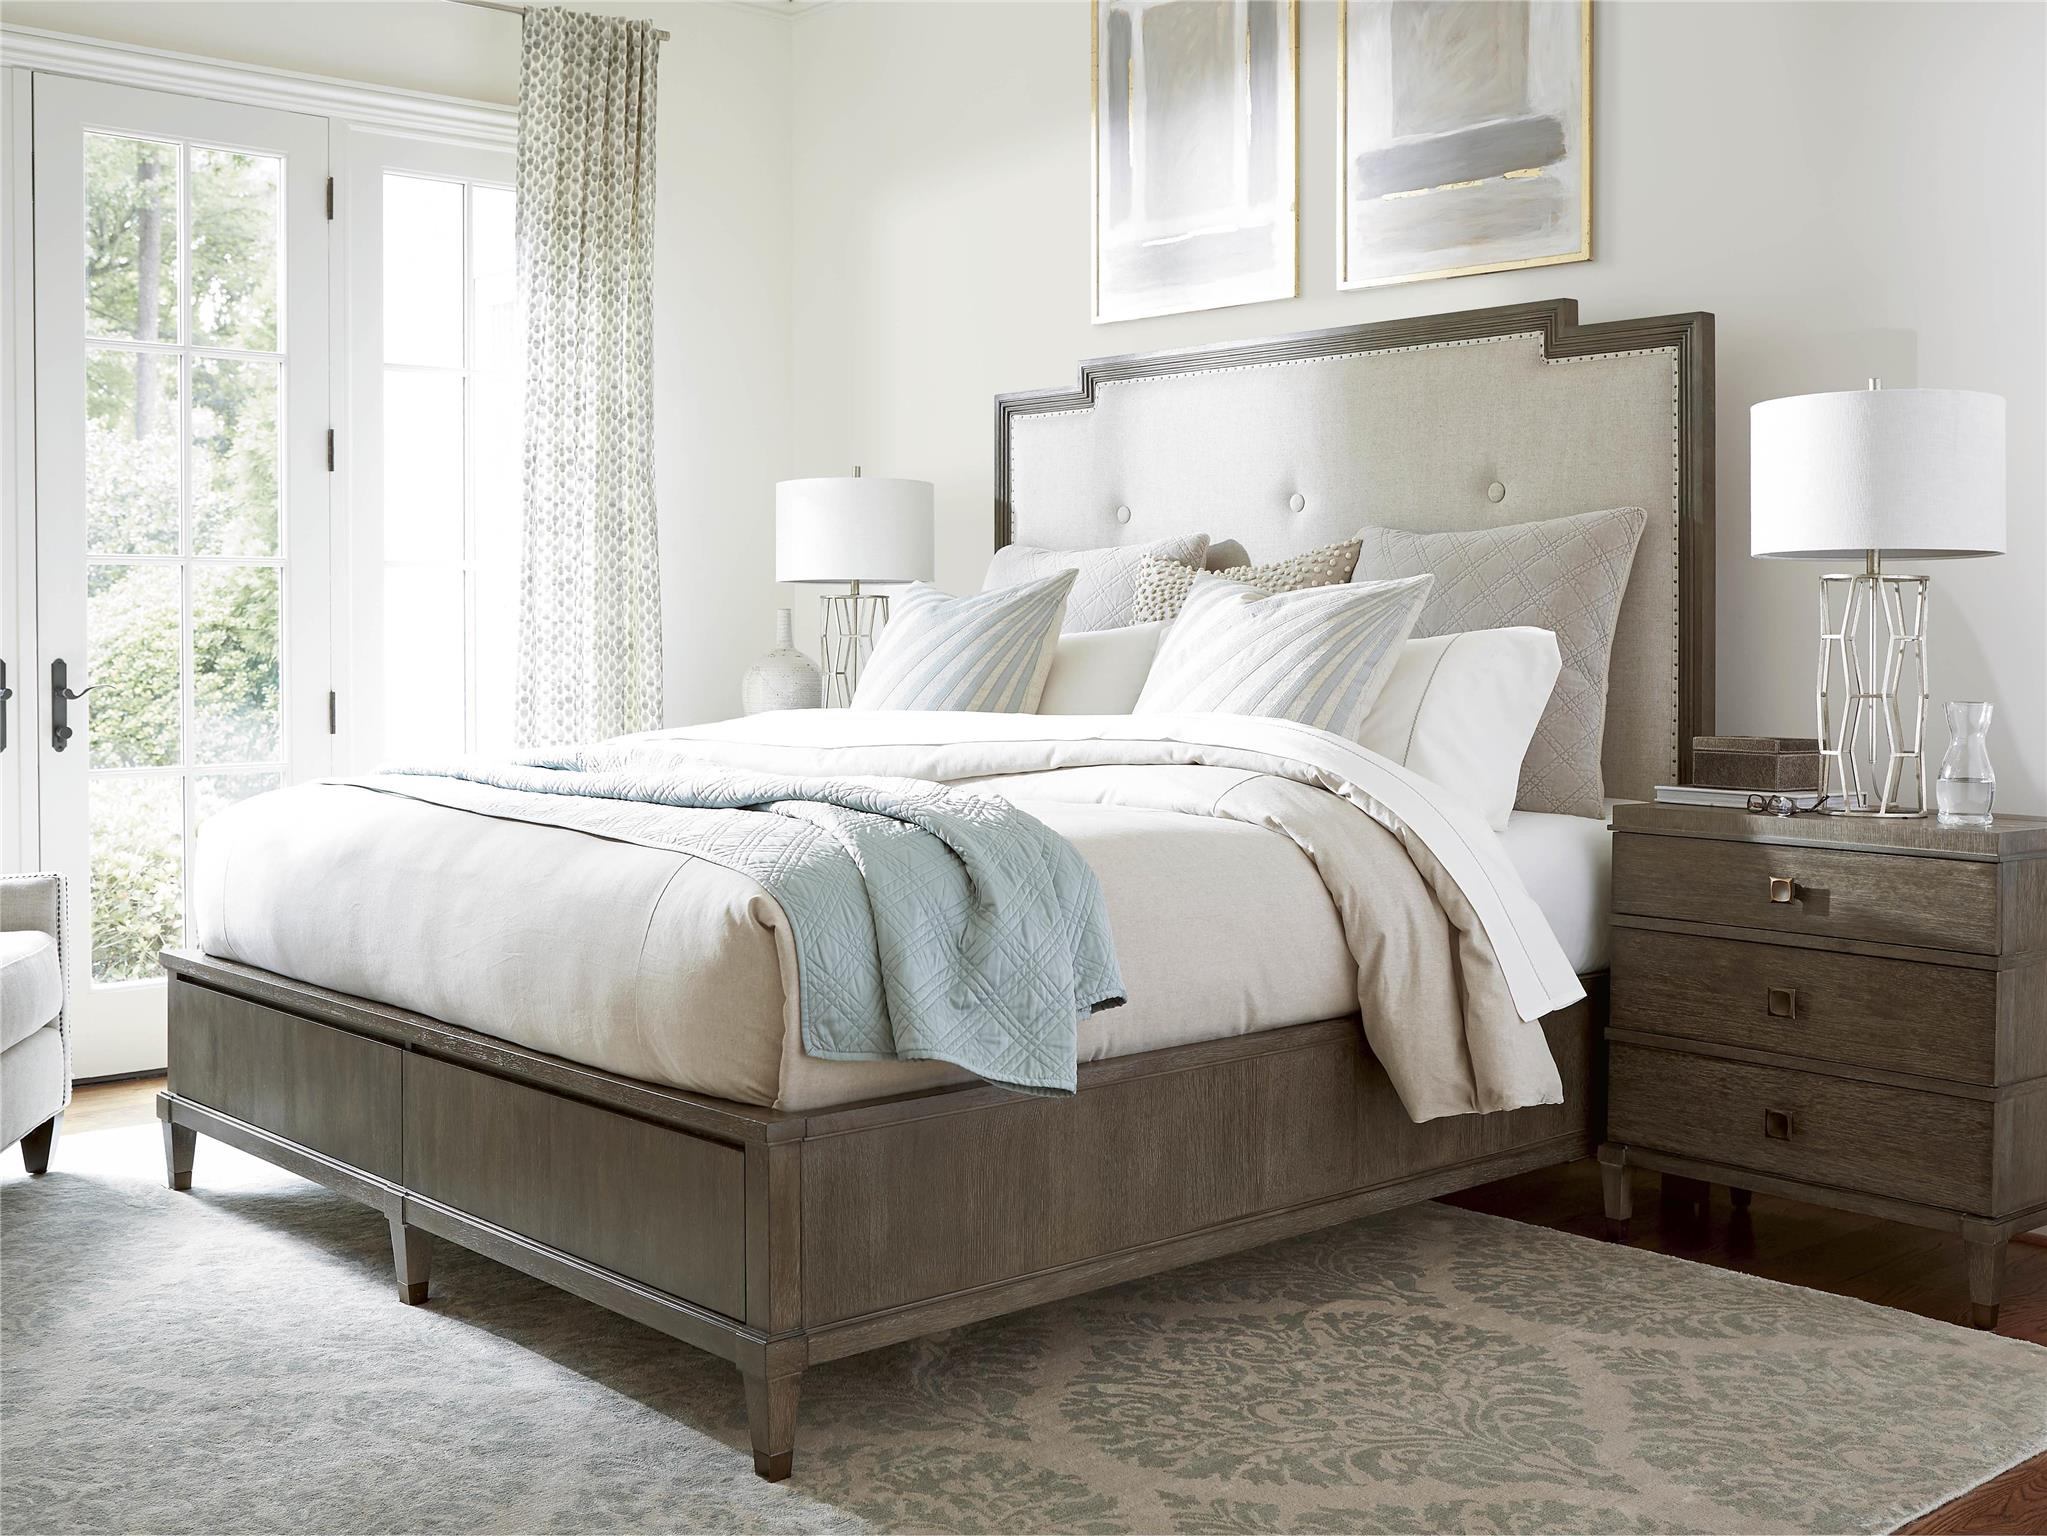 Harmony Cal King Bed with Storage